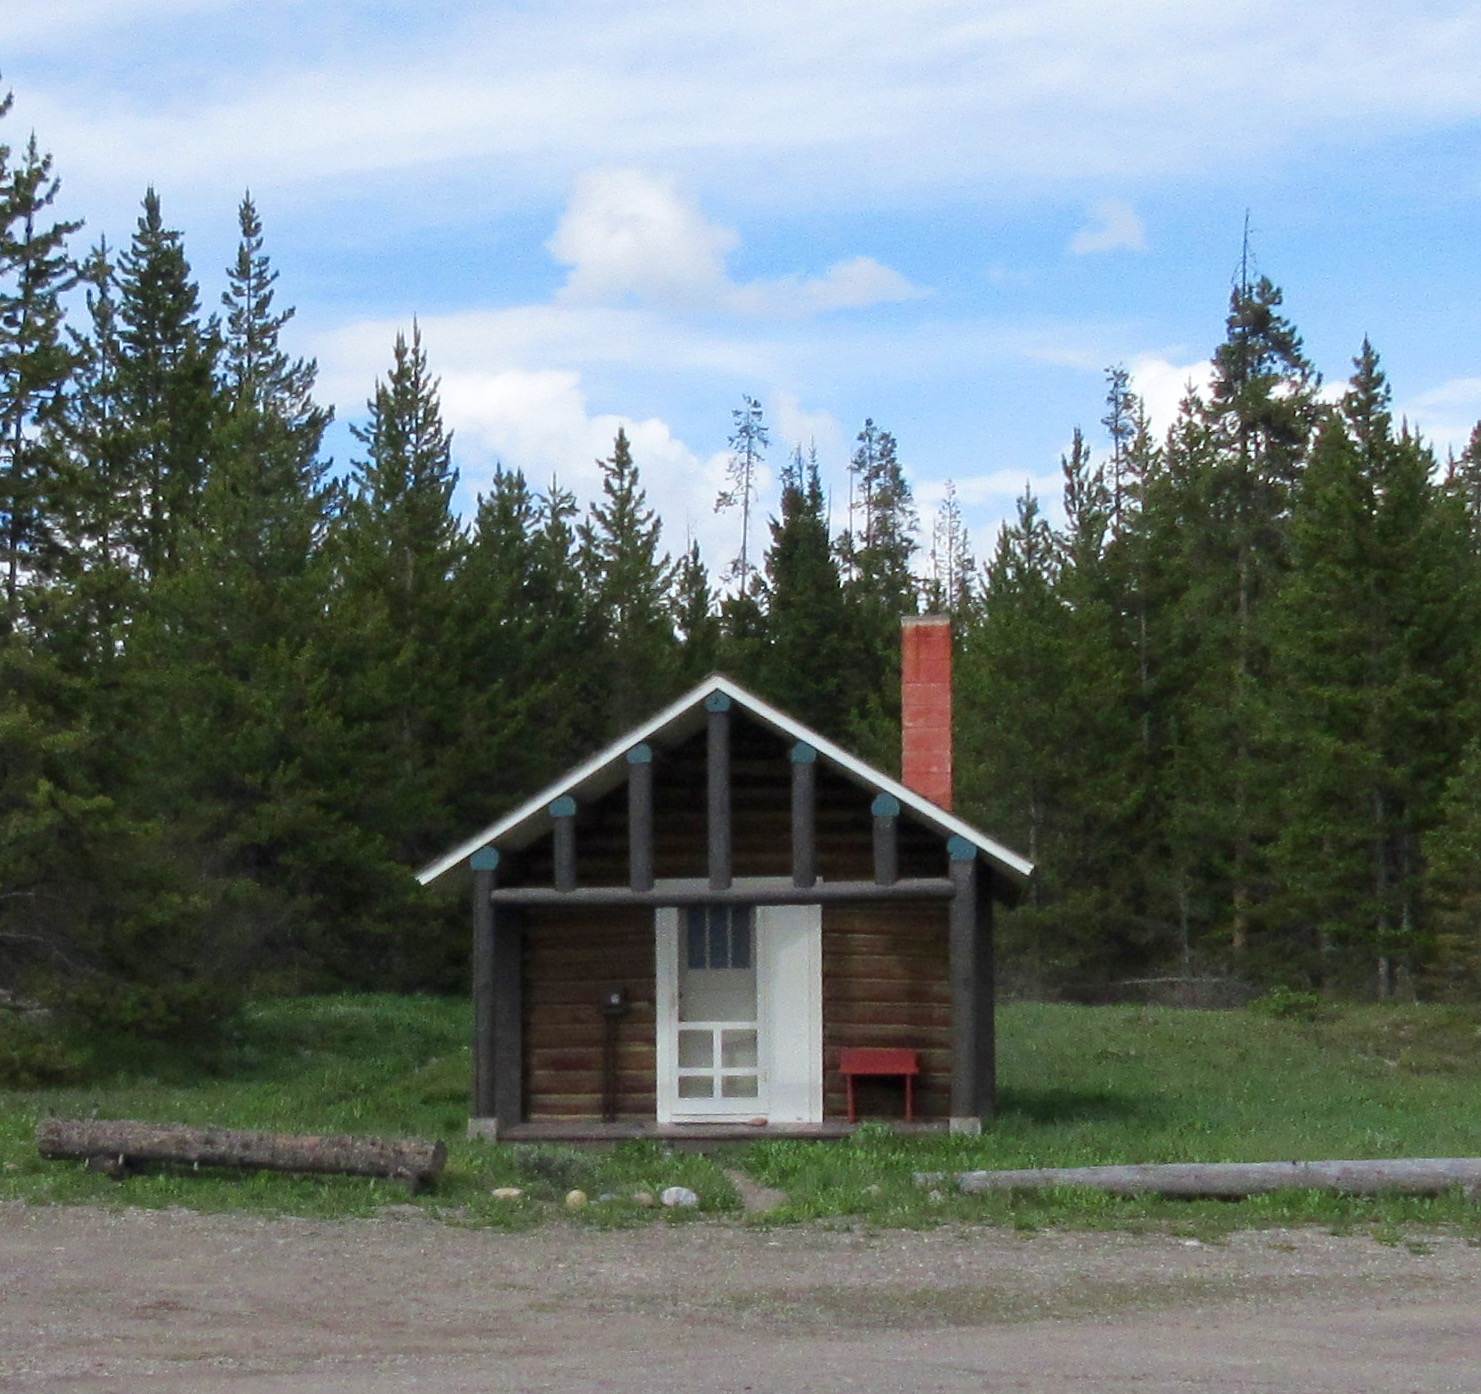 The Tack Cabin